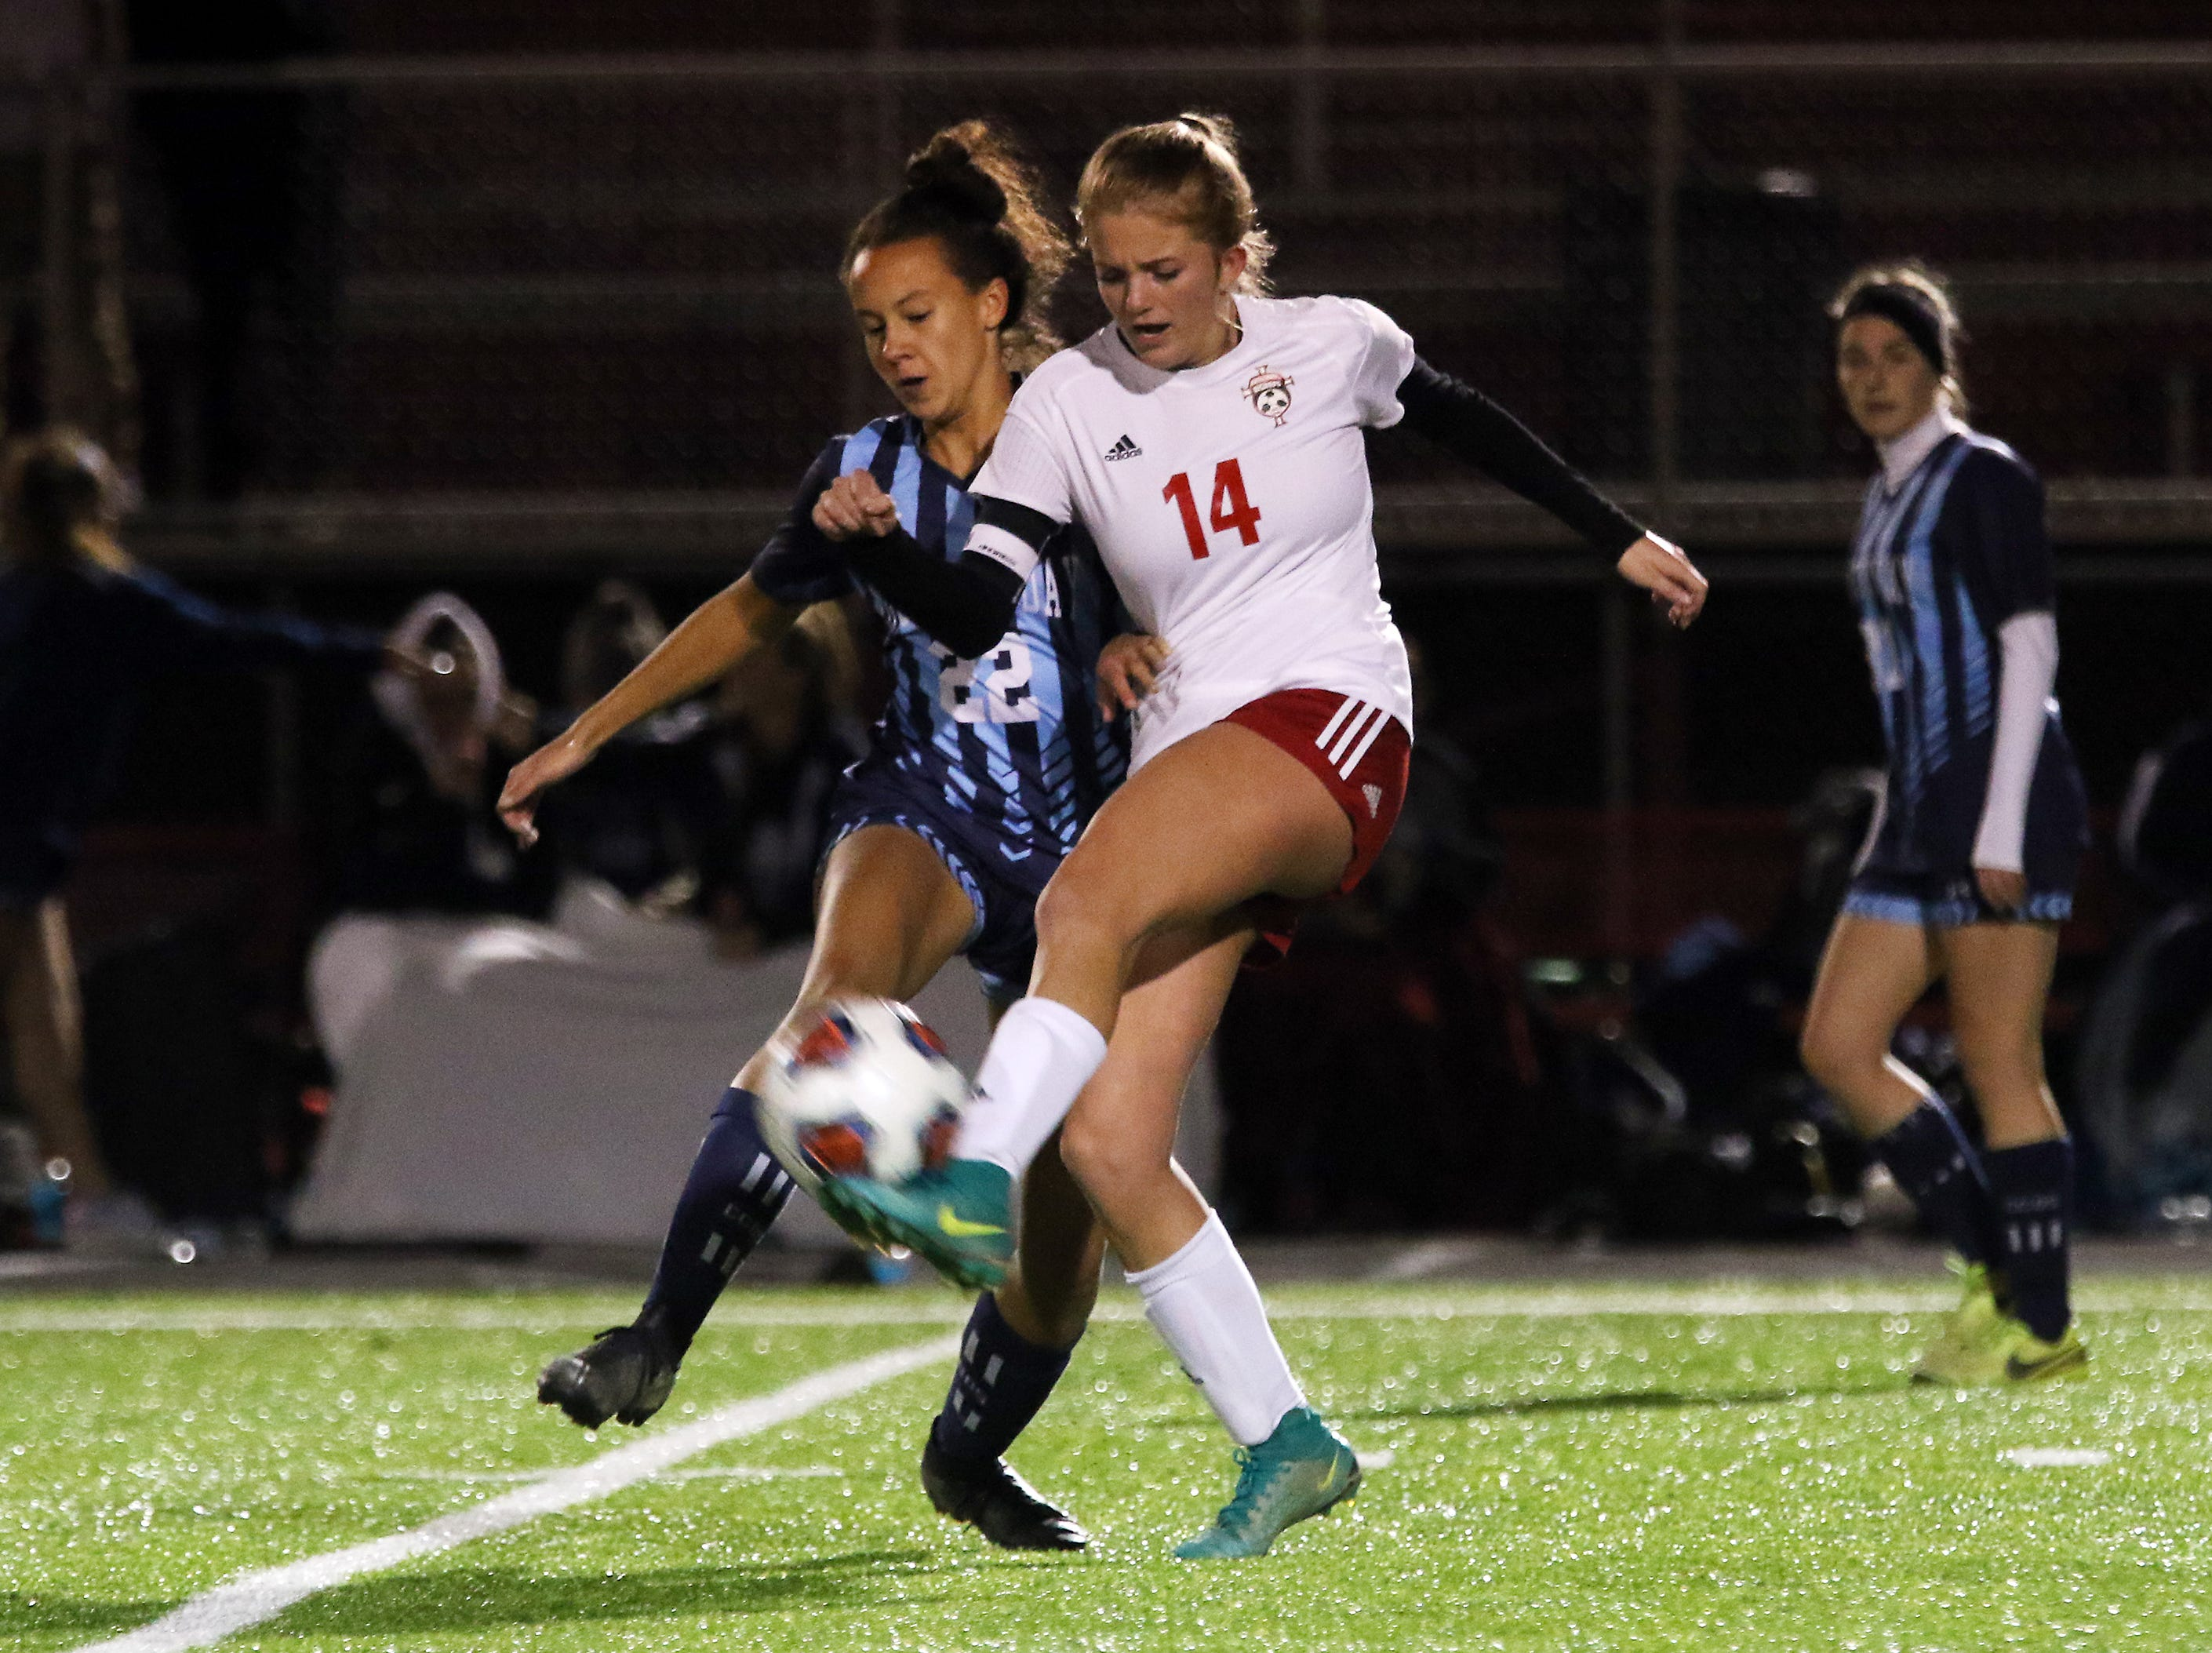 Emma Zemba passes the ball against CCD in the Division III state semifinals at London High School on Tuesday.